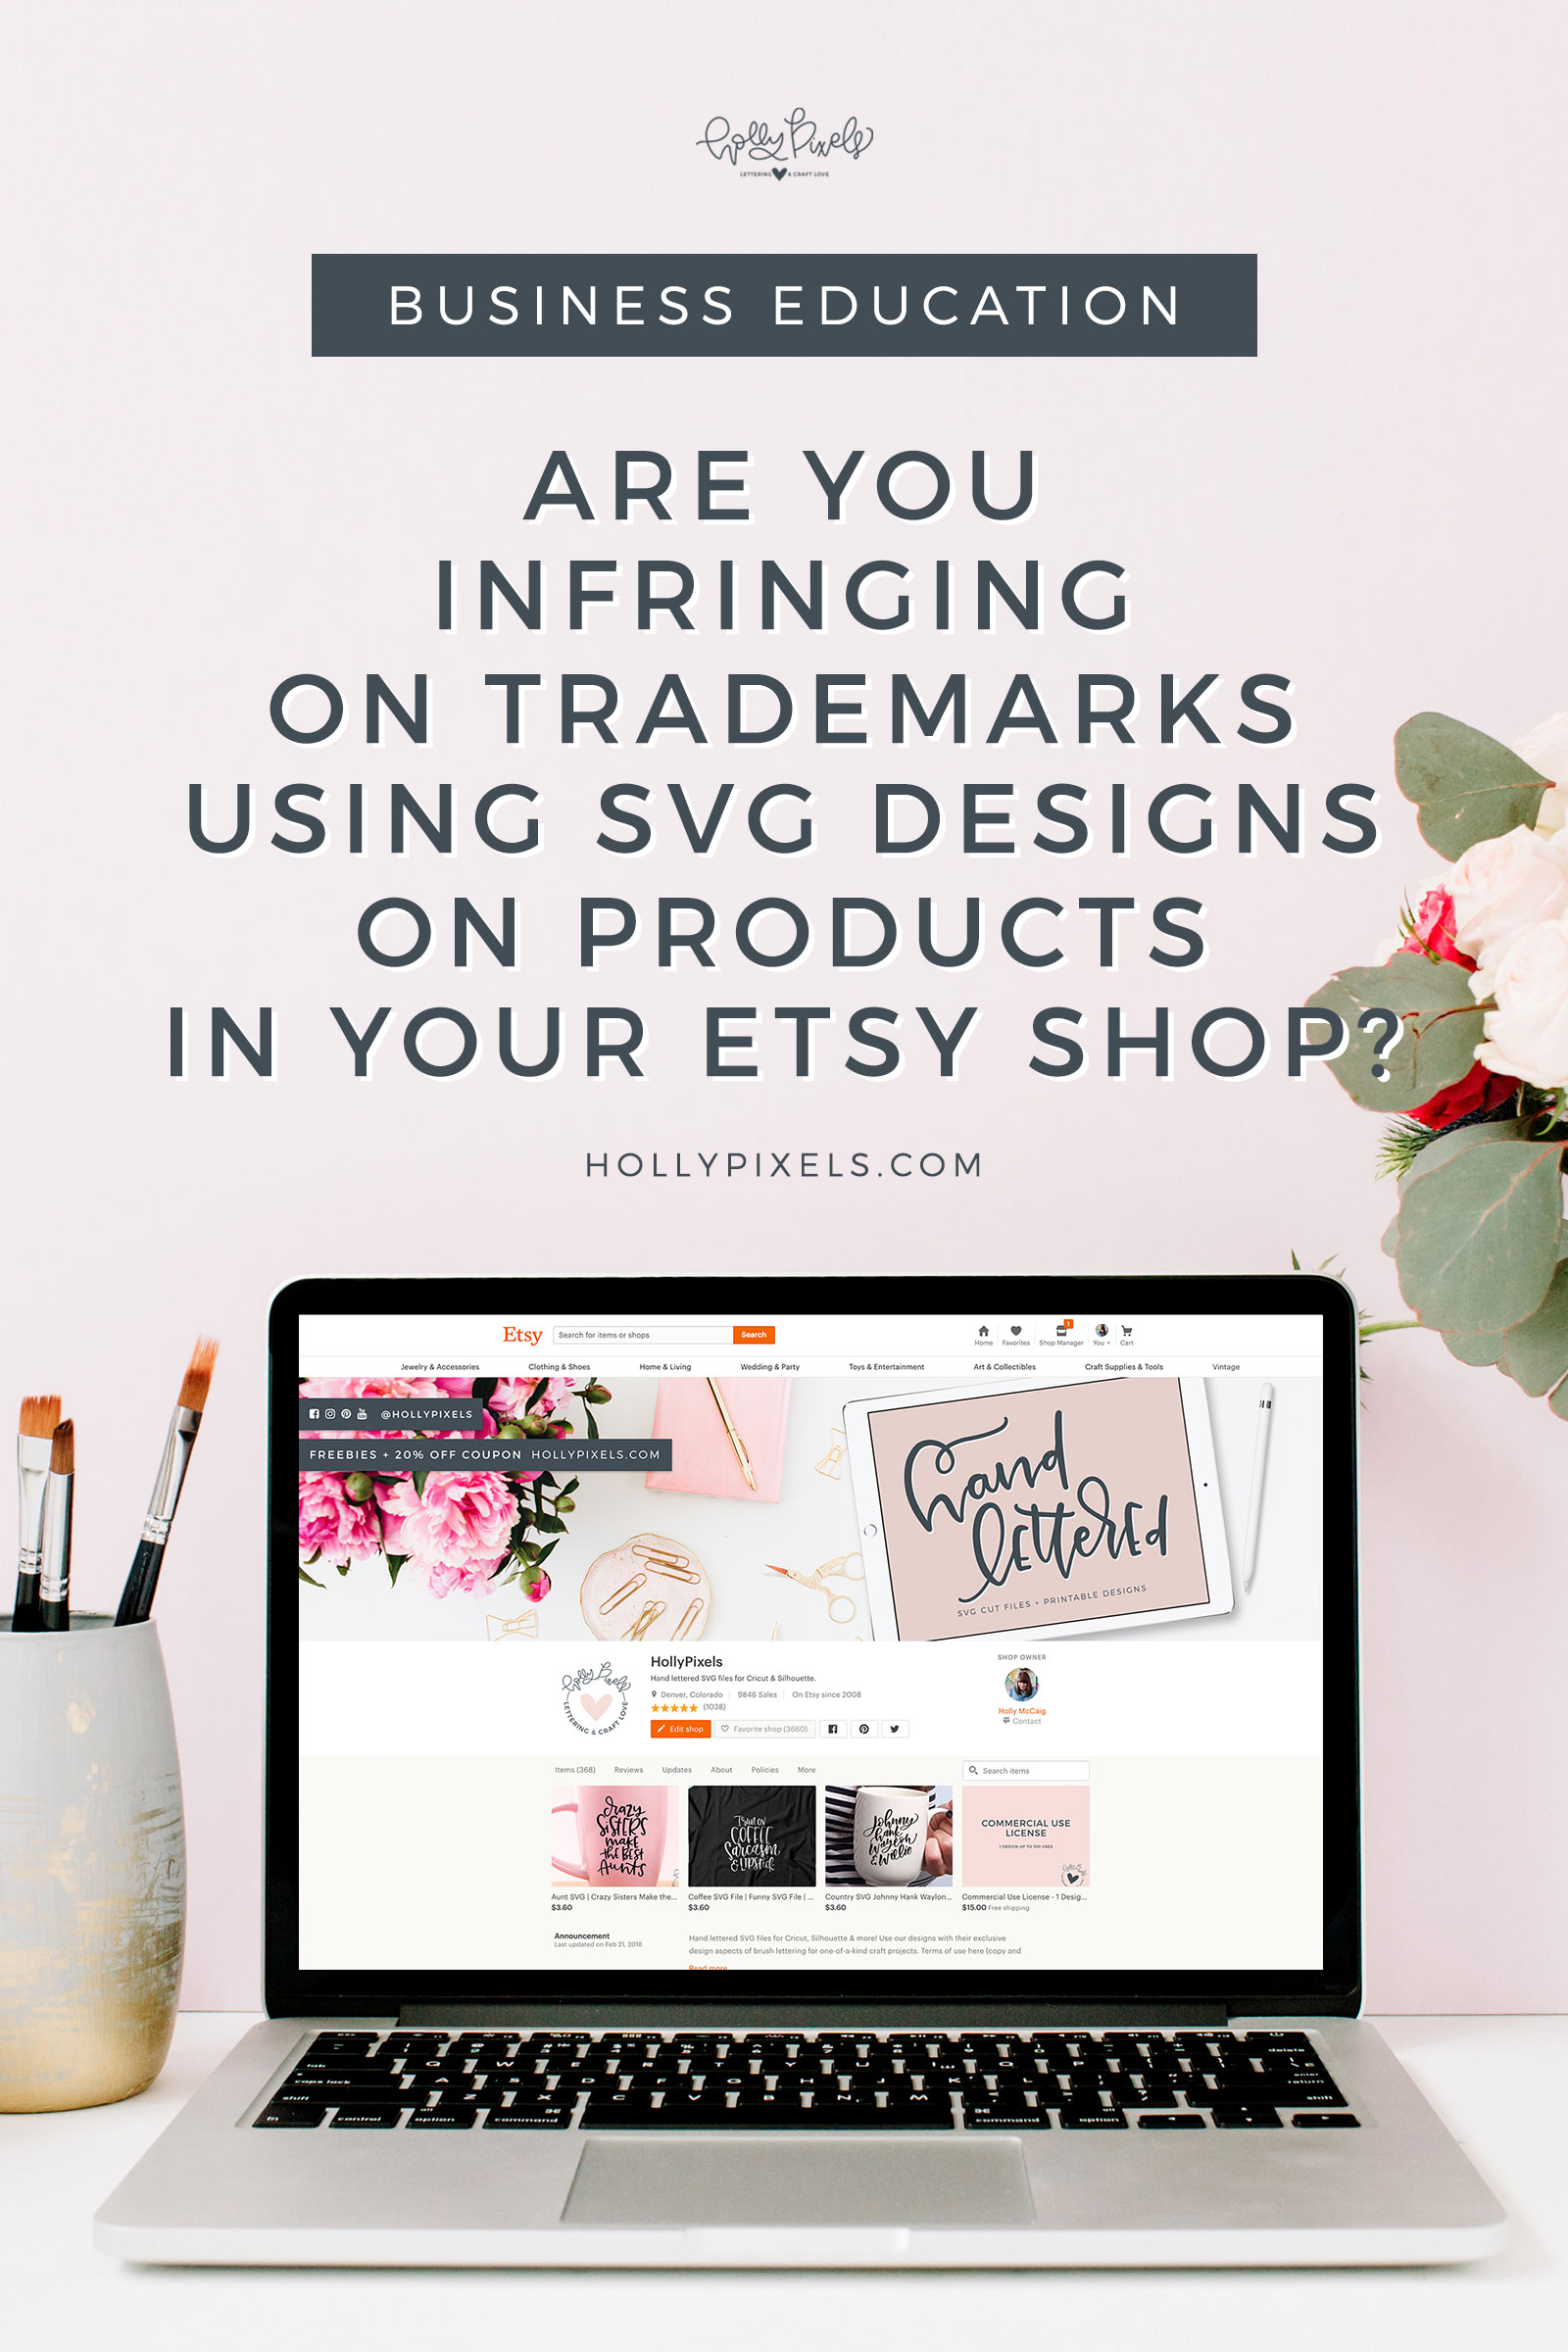 Are you infringing on trademarks with SVG designs you purchase on Etsy or elsewhere by selling products in your Etsy shop? You may be in legal trouble. Learn what you should be doing and how I am helping make things legal in my shop so you can sell fun products with my designs. #legal #svgfiles #svg #trademarks #sellingonetsy #etsyseller #etsyshop #copyright